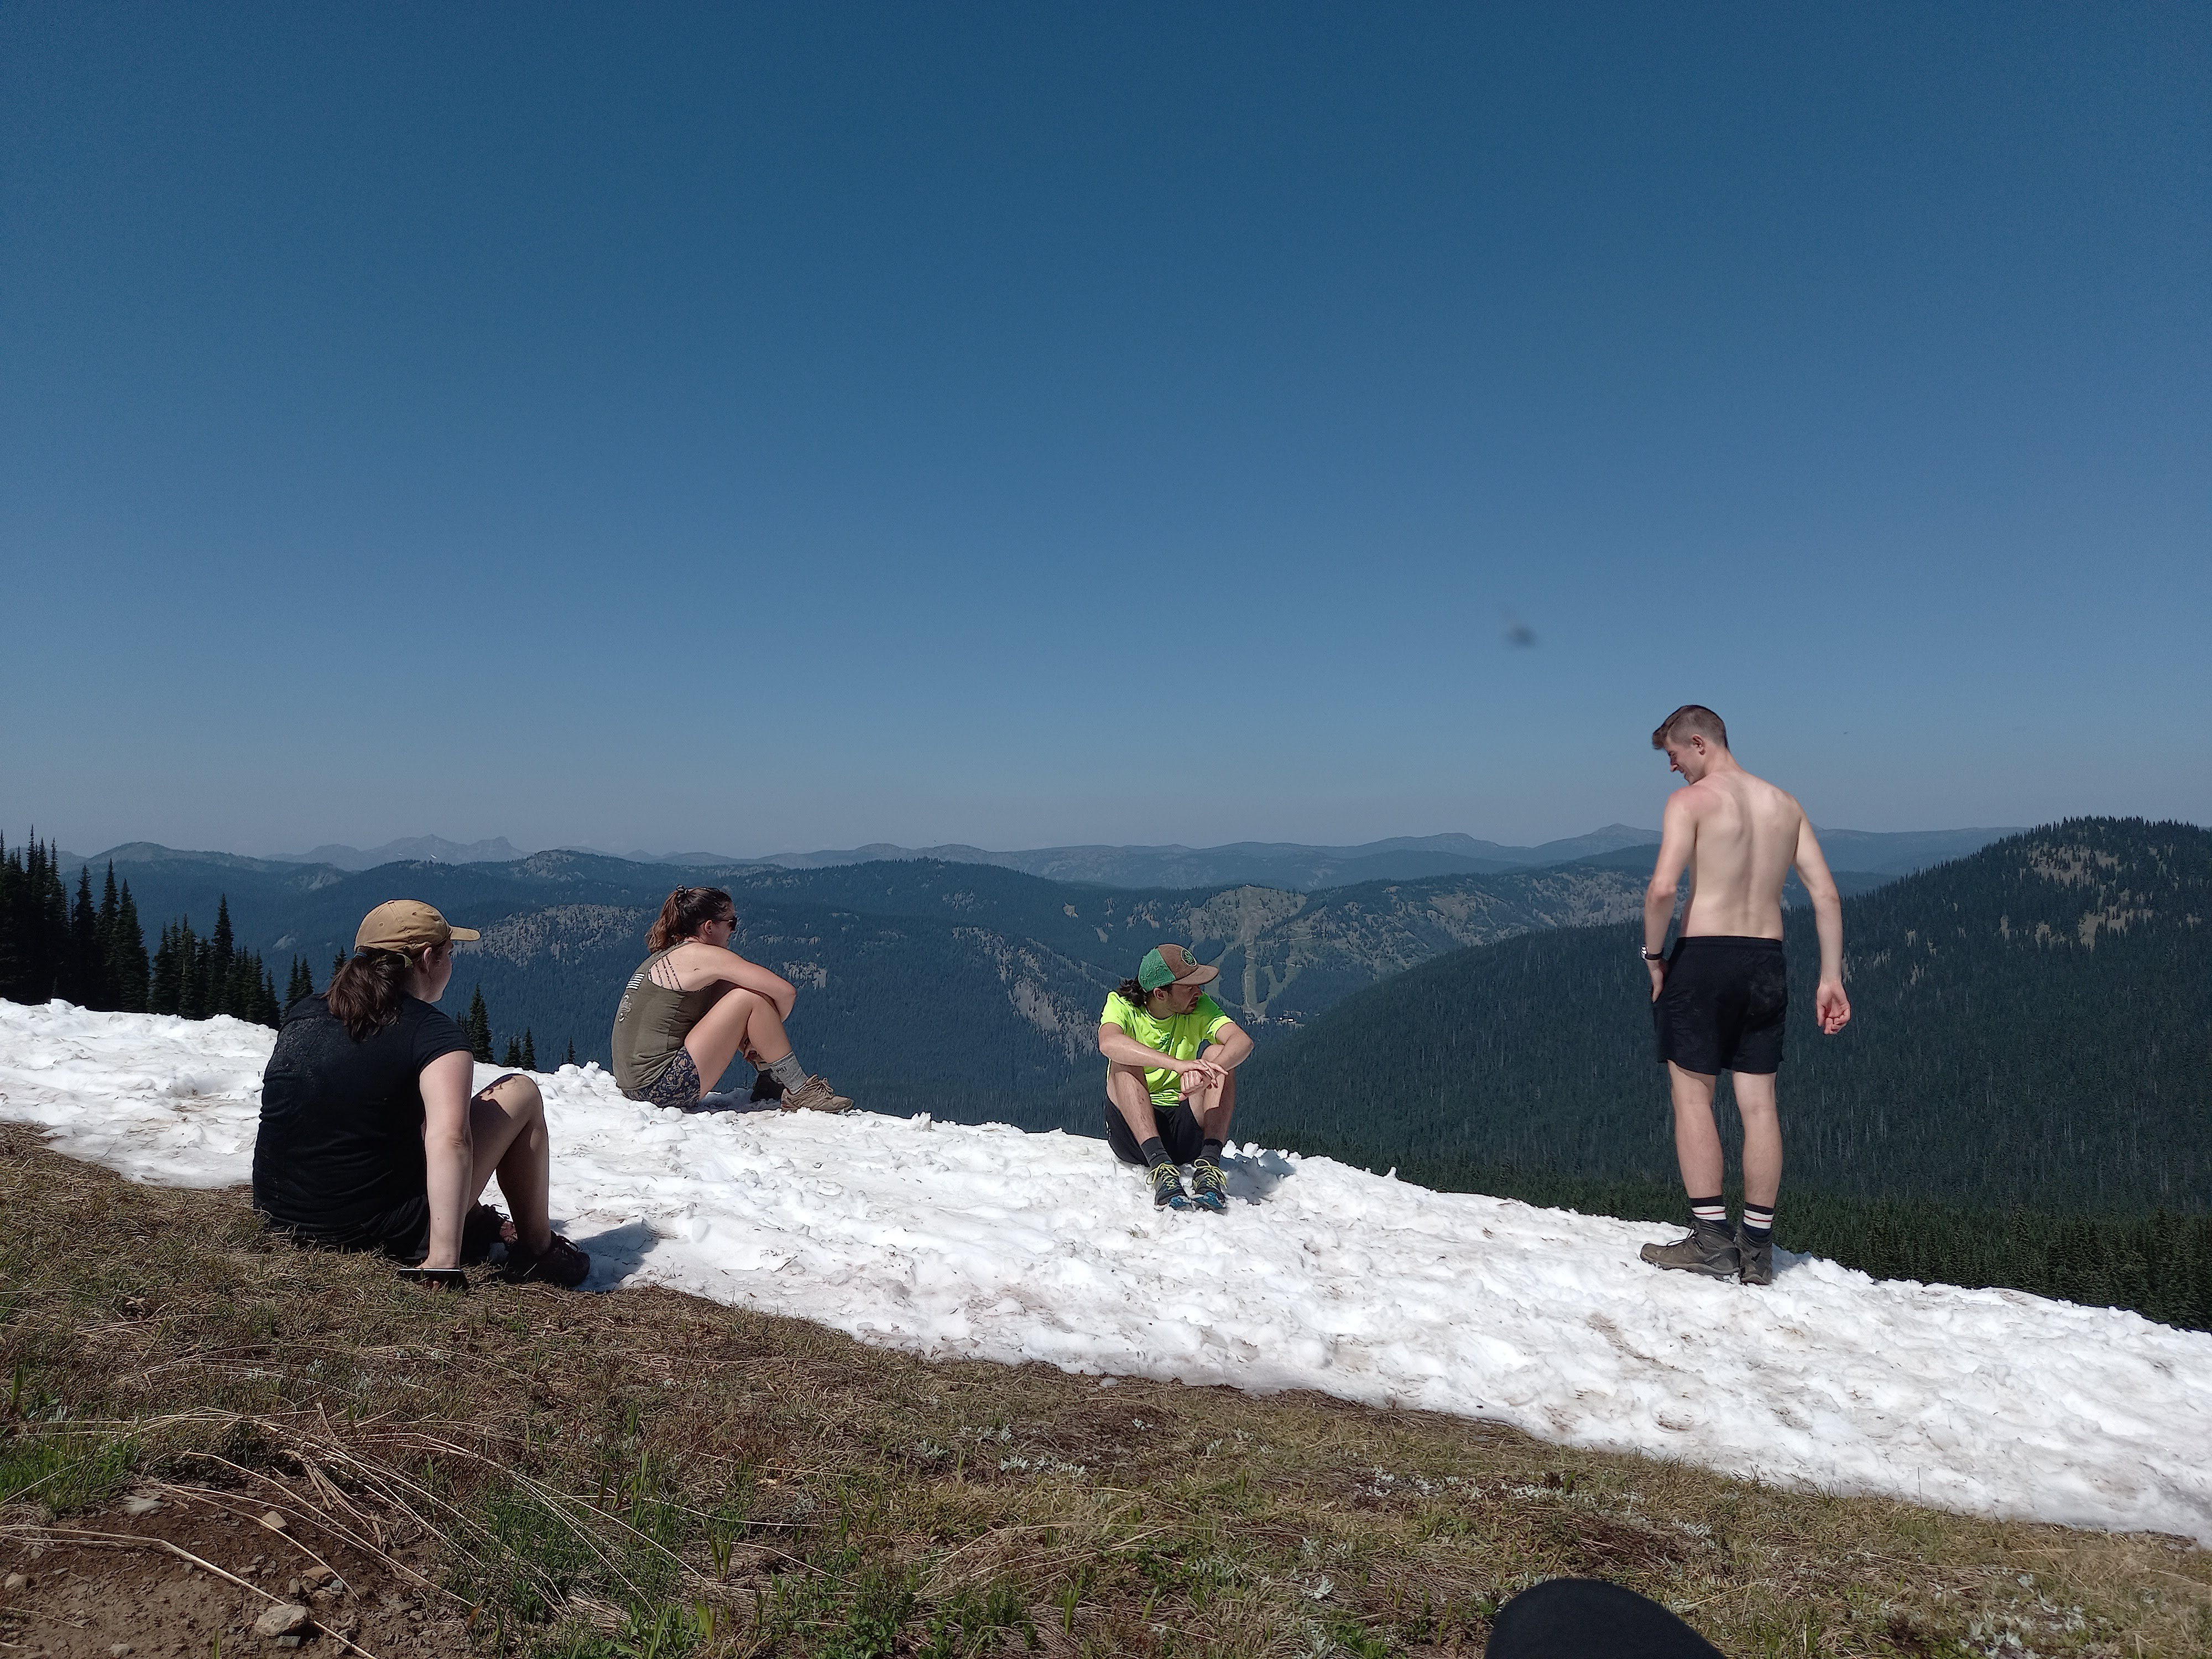 The Snow Camp Mountain ass-cooling station